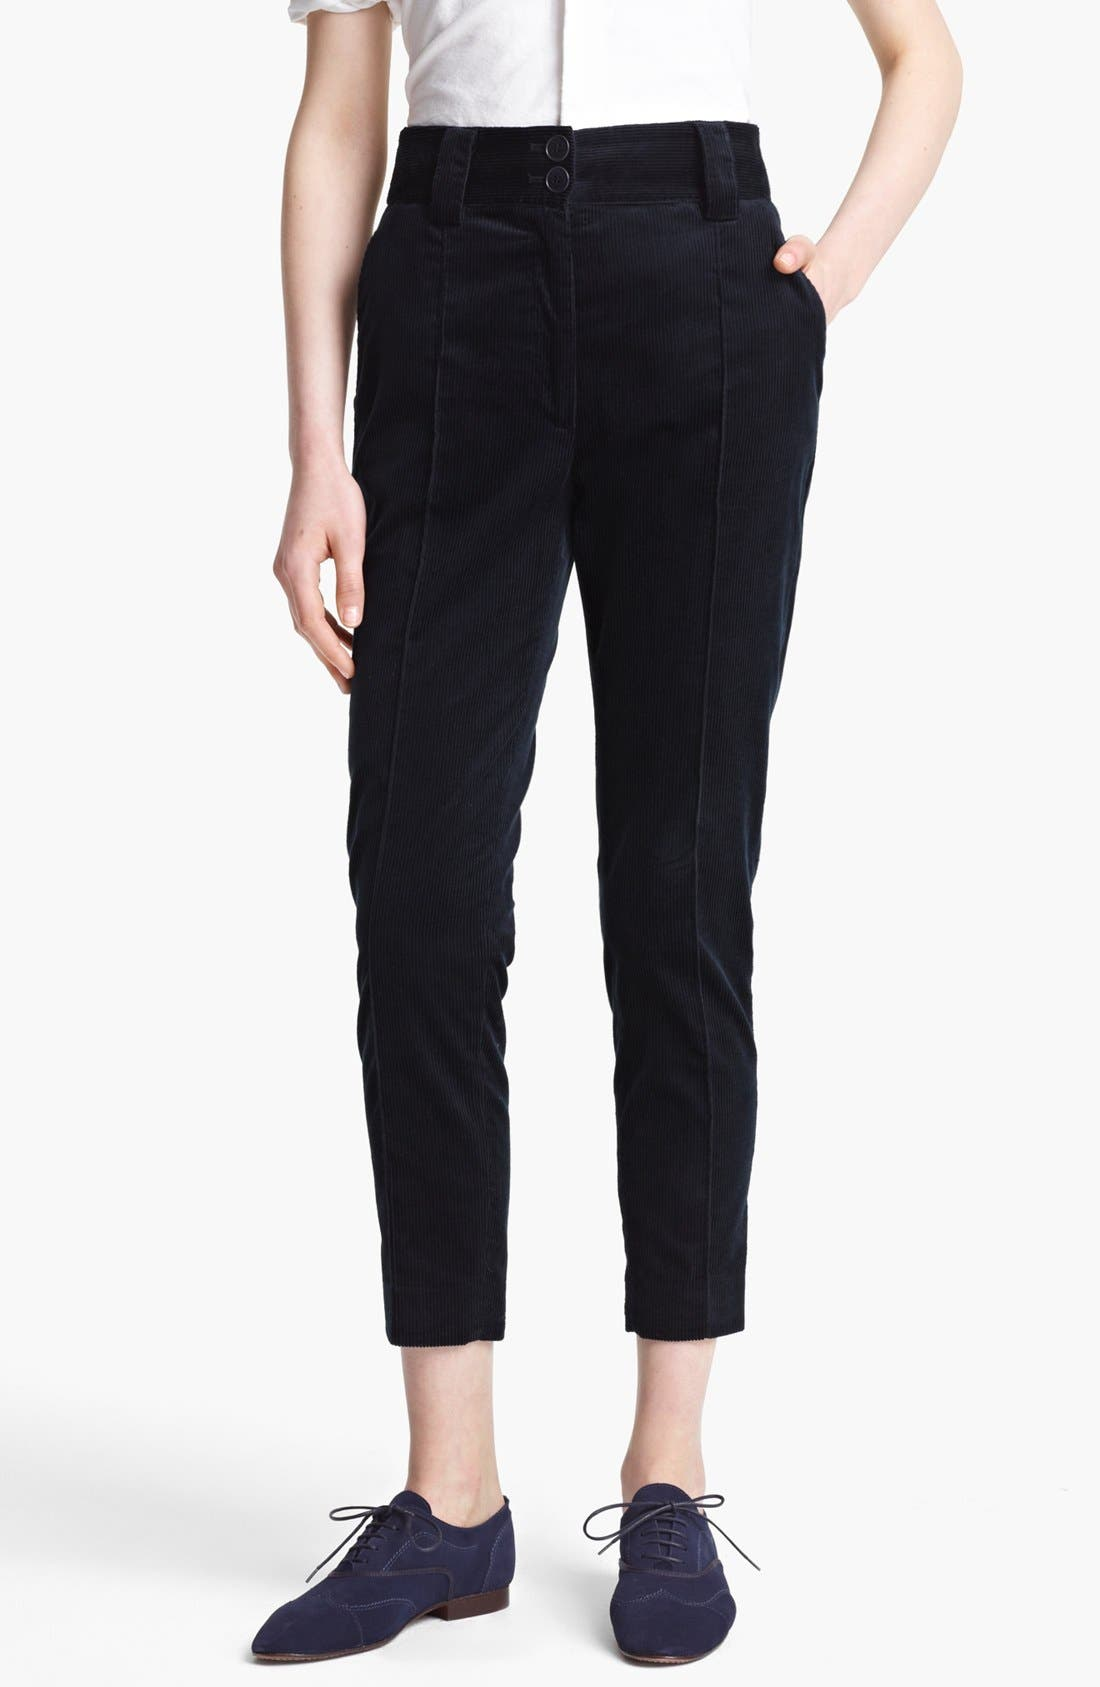 Alternate Image 1 Selected - Band of Outsiders Skinny Corduroy Pants